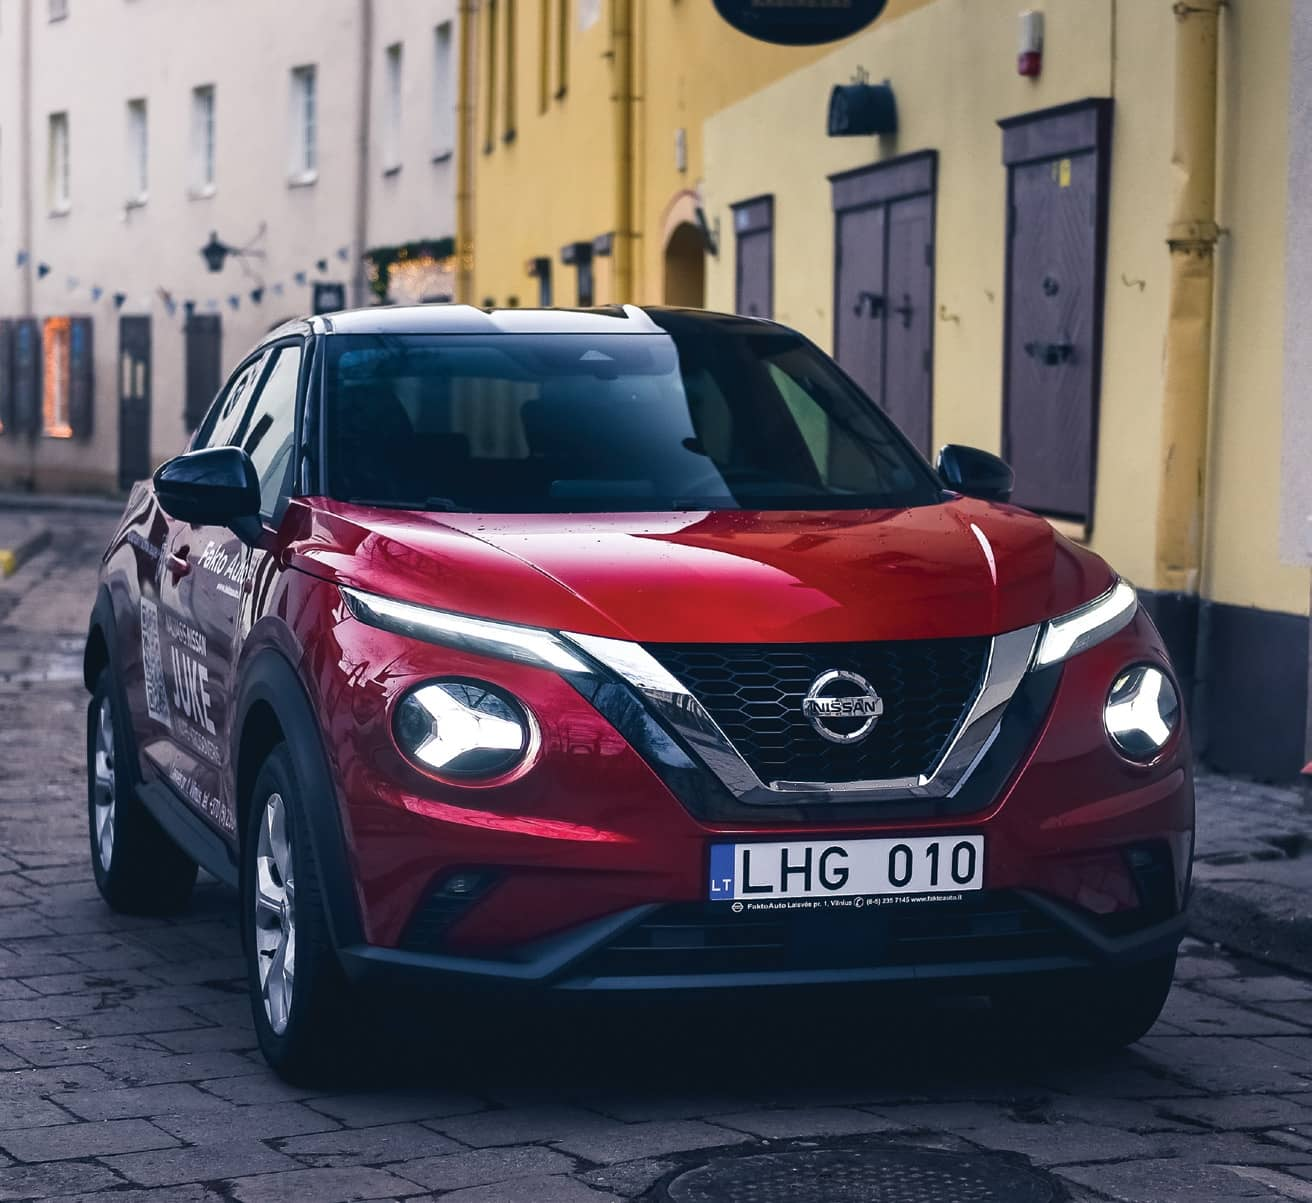 The Juke GROWS UP